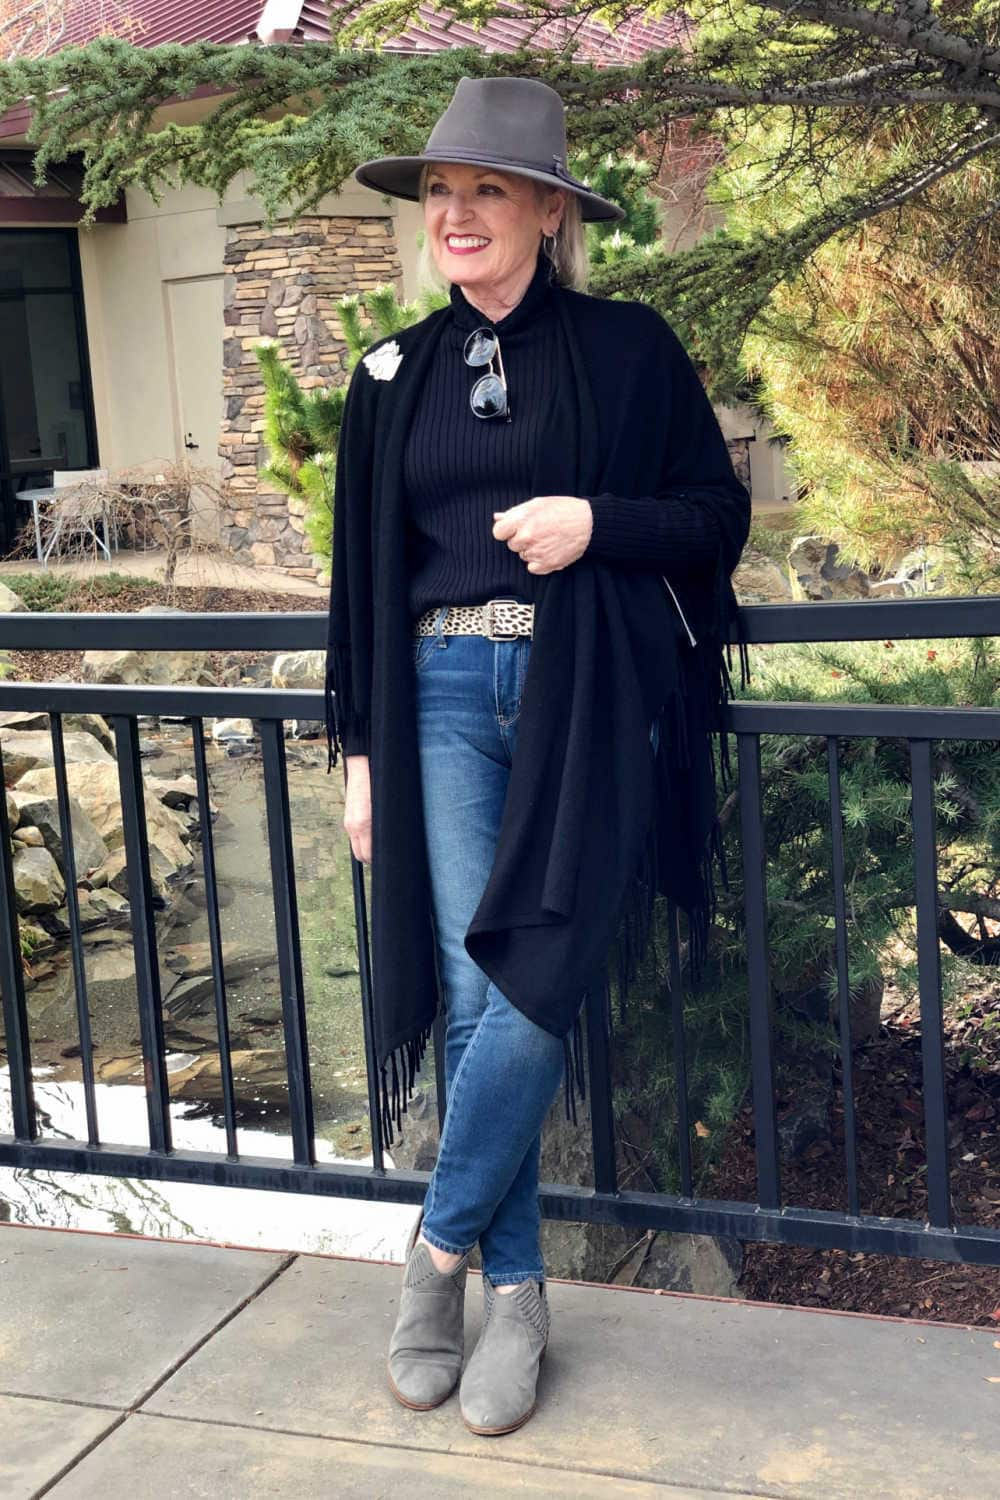 over 50 fashion blogger jennifer connolly wearign chico;s outfit with gray fedora